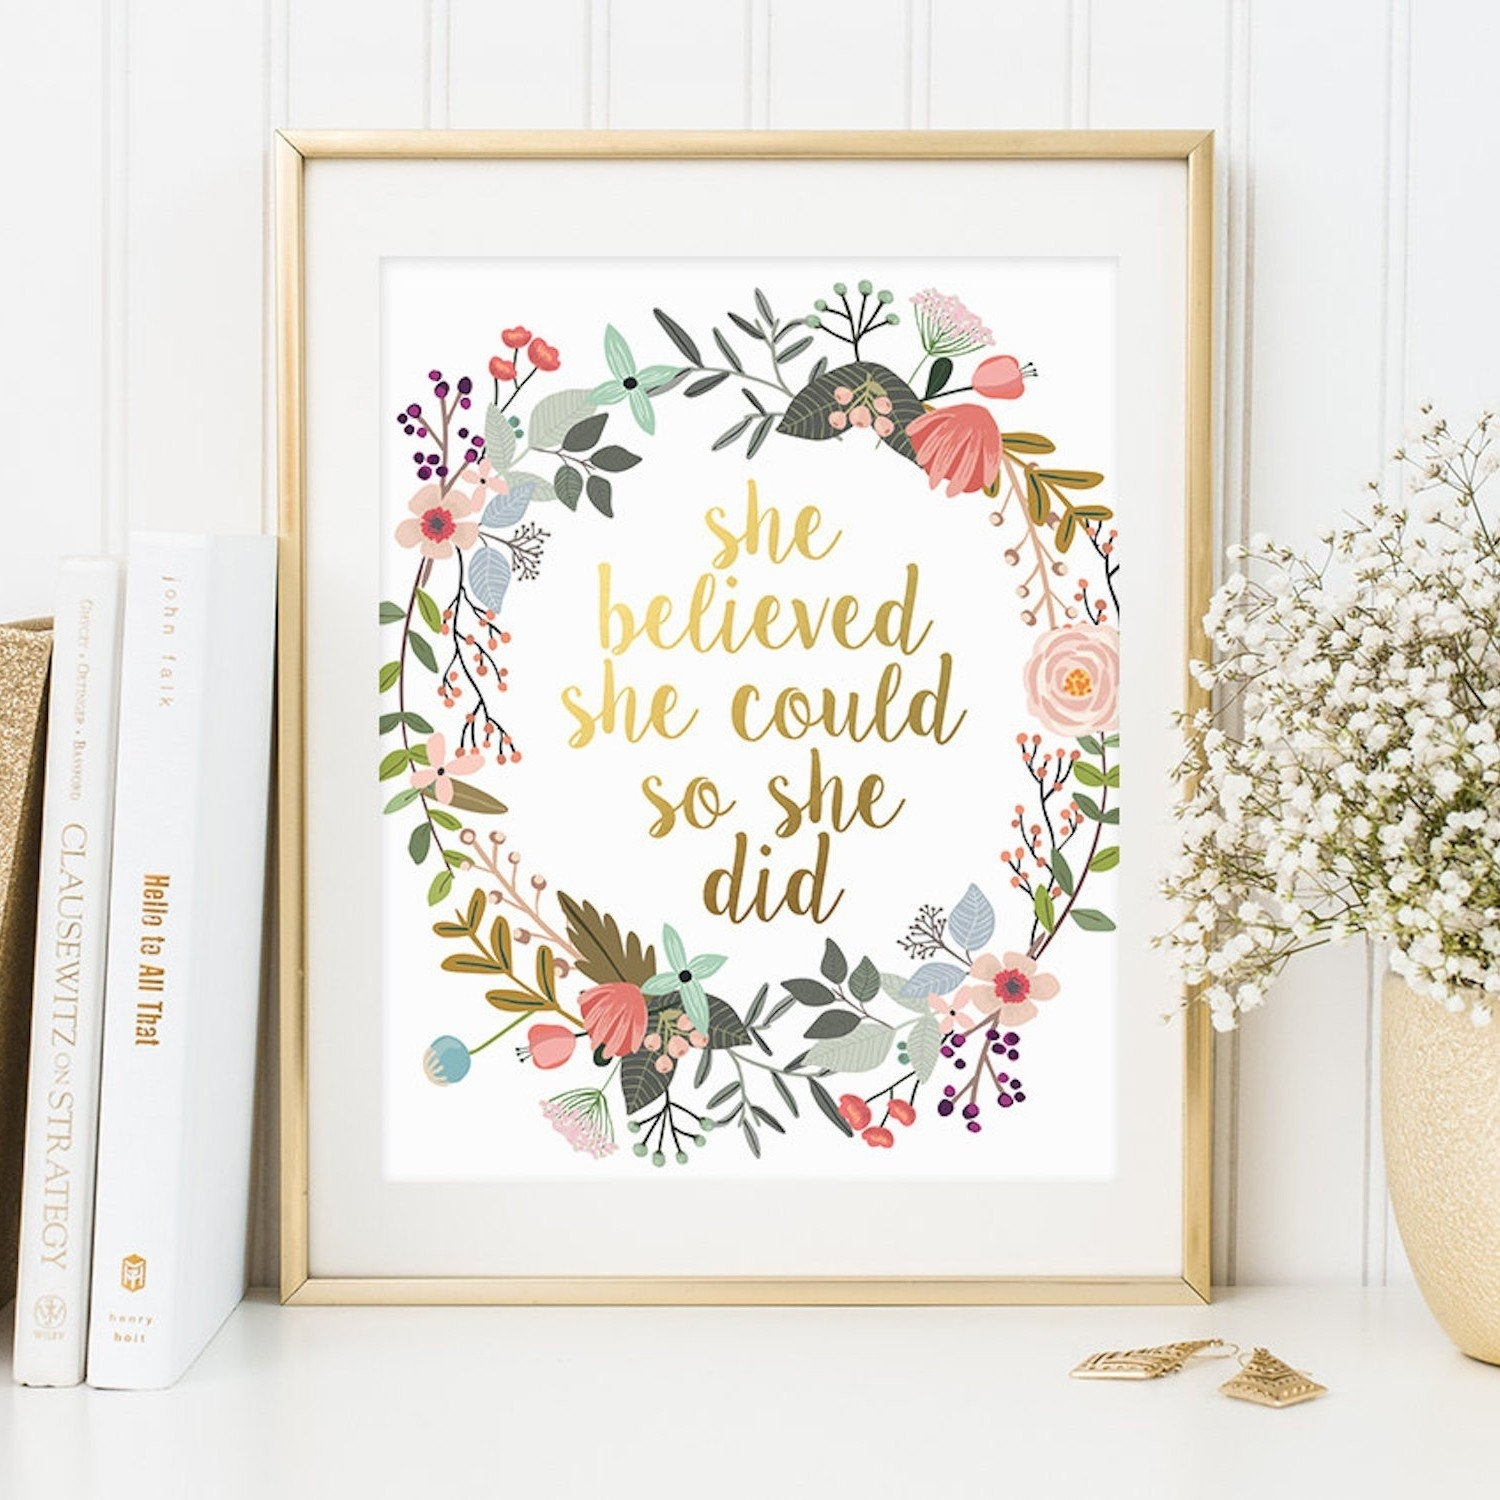 Inspirational Quote Wall Art | Popsugar Moms With Regard To Most Recently Released Inspirational Quotes Wall Art (View 8 of 20)